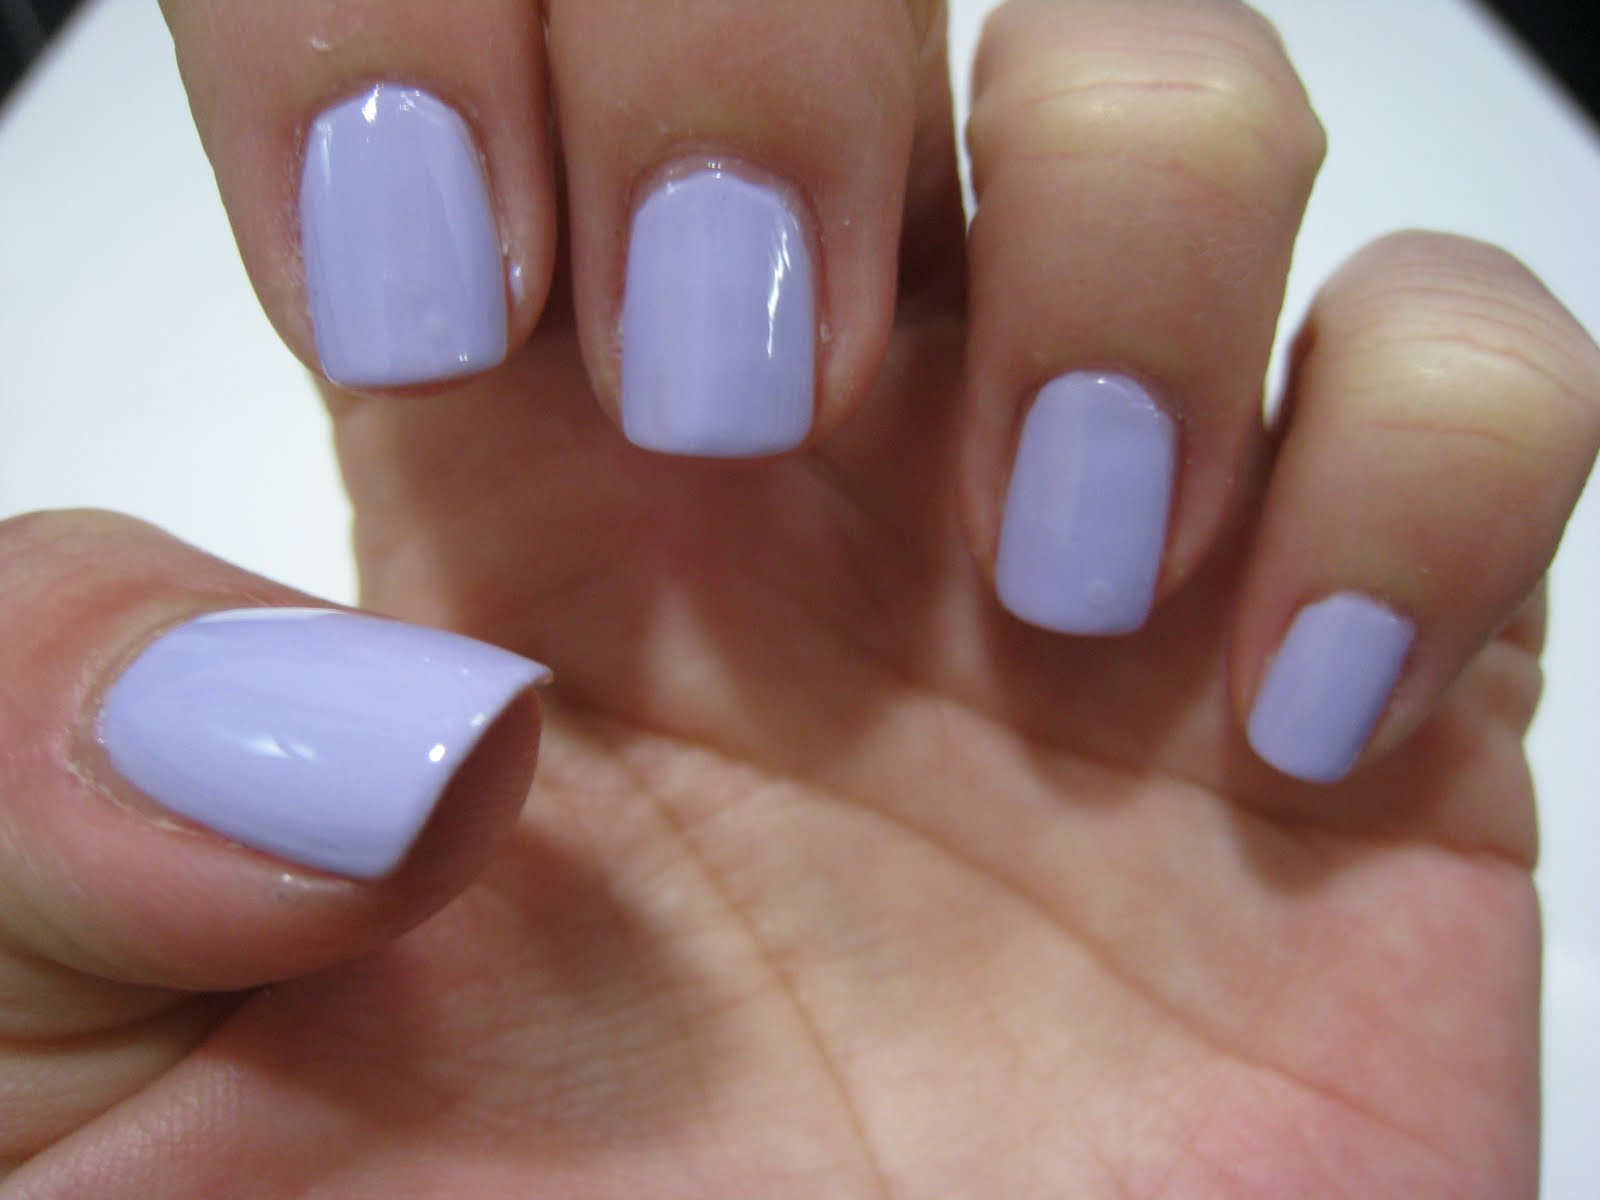 Shades of Neutral Me: Essie Nail Polish in Lilacism